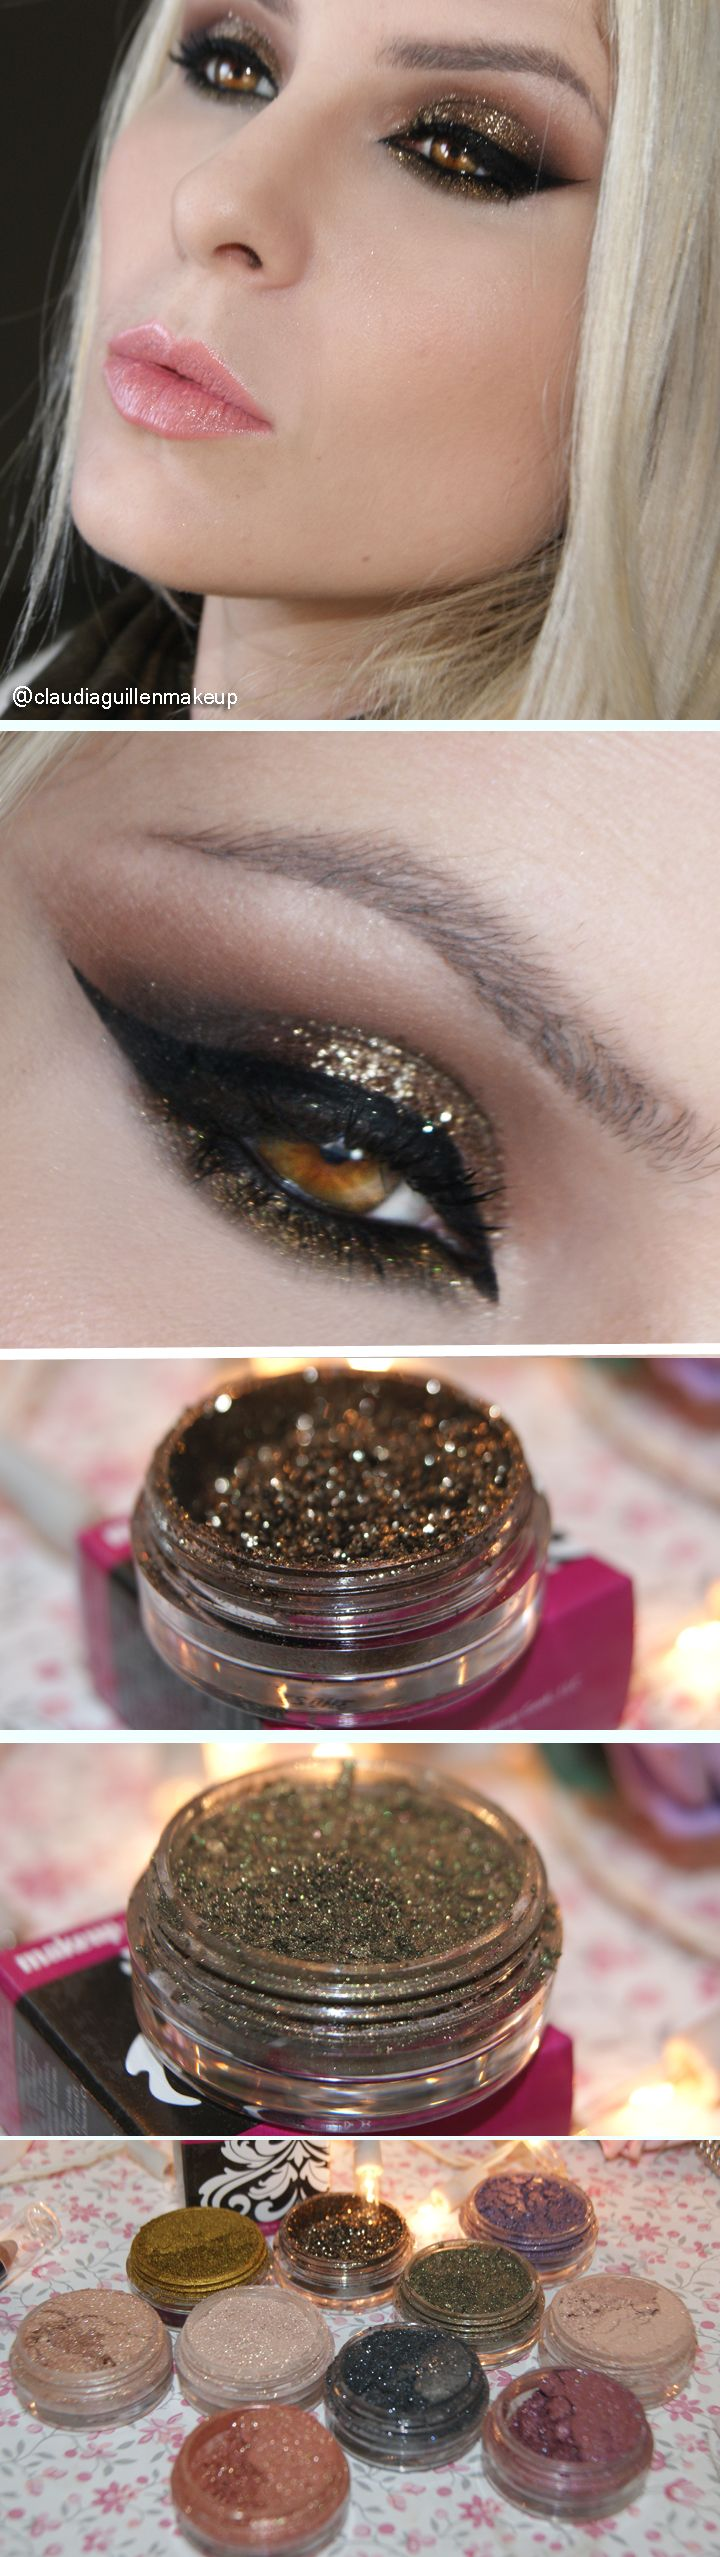 make com os pigmentos make up geek, Utopia e Kryptonite http://claudiaguillen.inbloodesign.com/